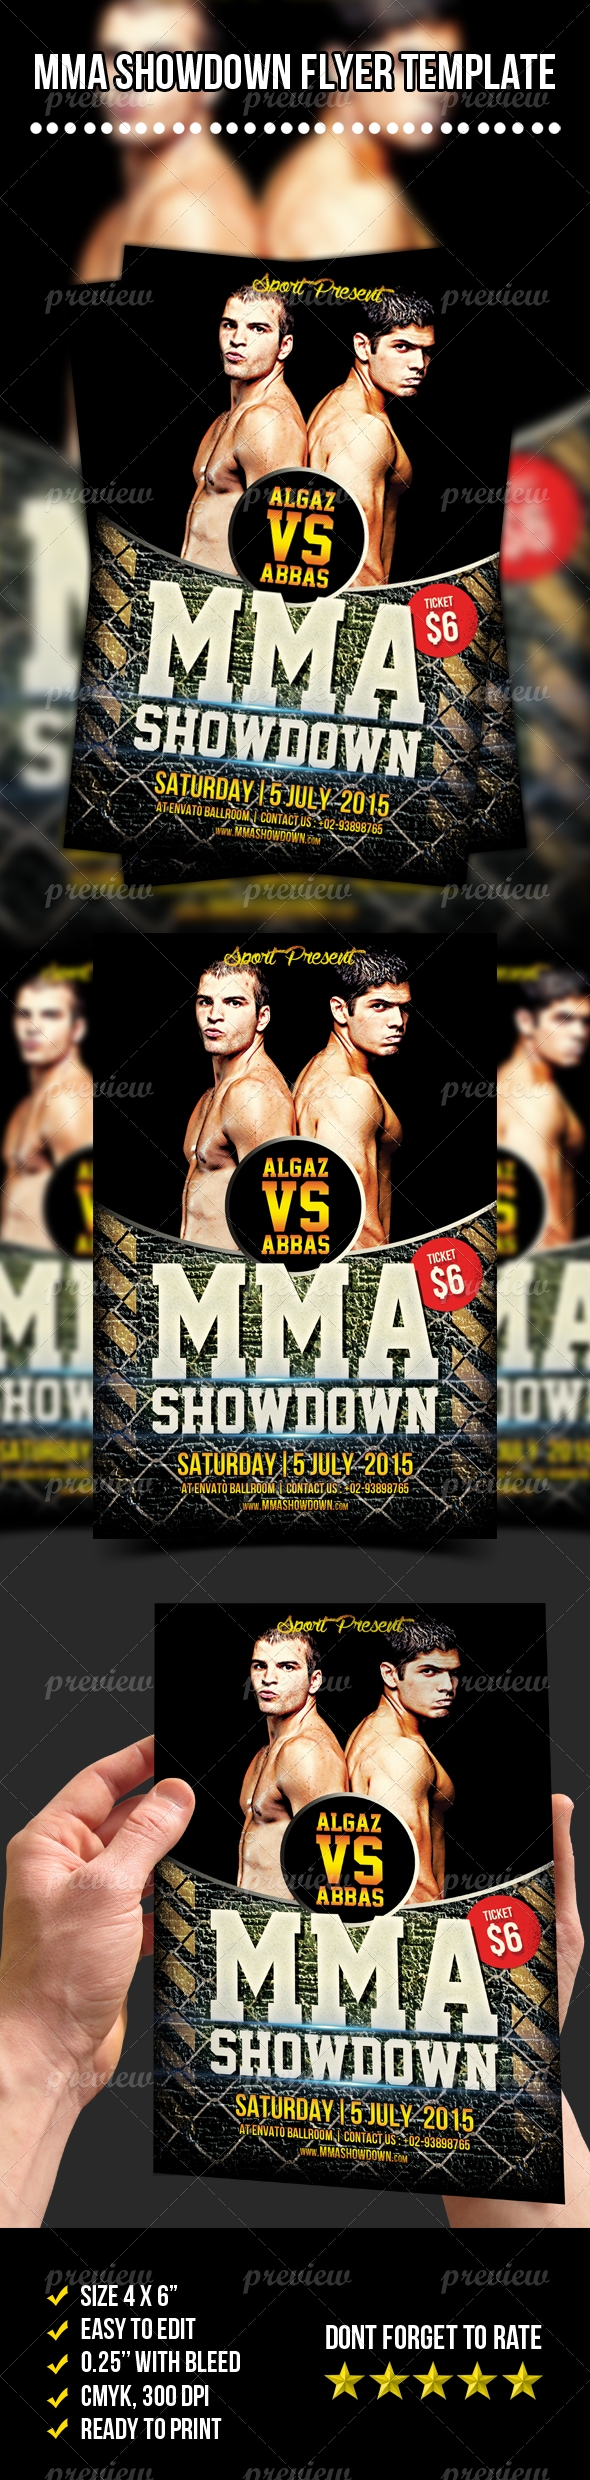 Mma Showdown Flyer Vol   Print    Mma